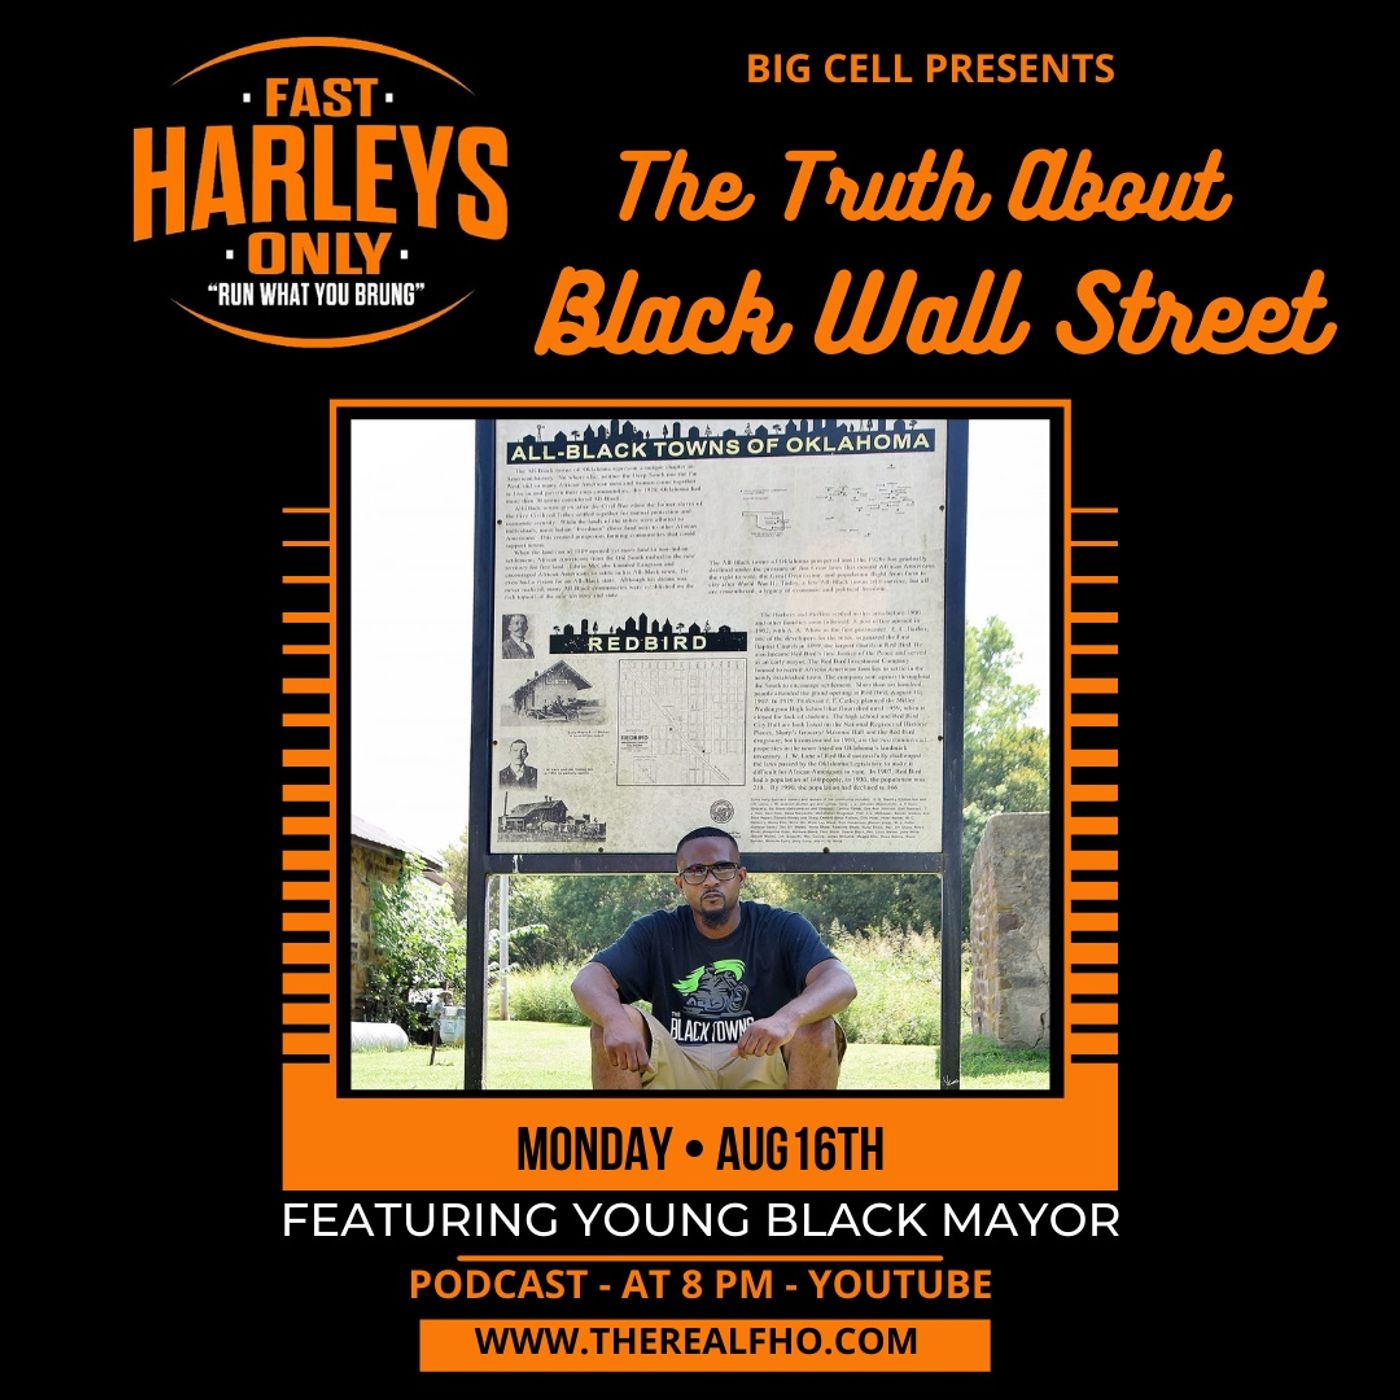 DISCUSSION WITH THE YOUNG BLACK TOWNS MAYOR